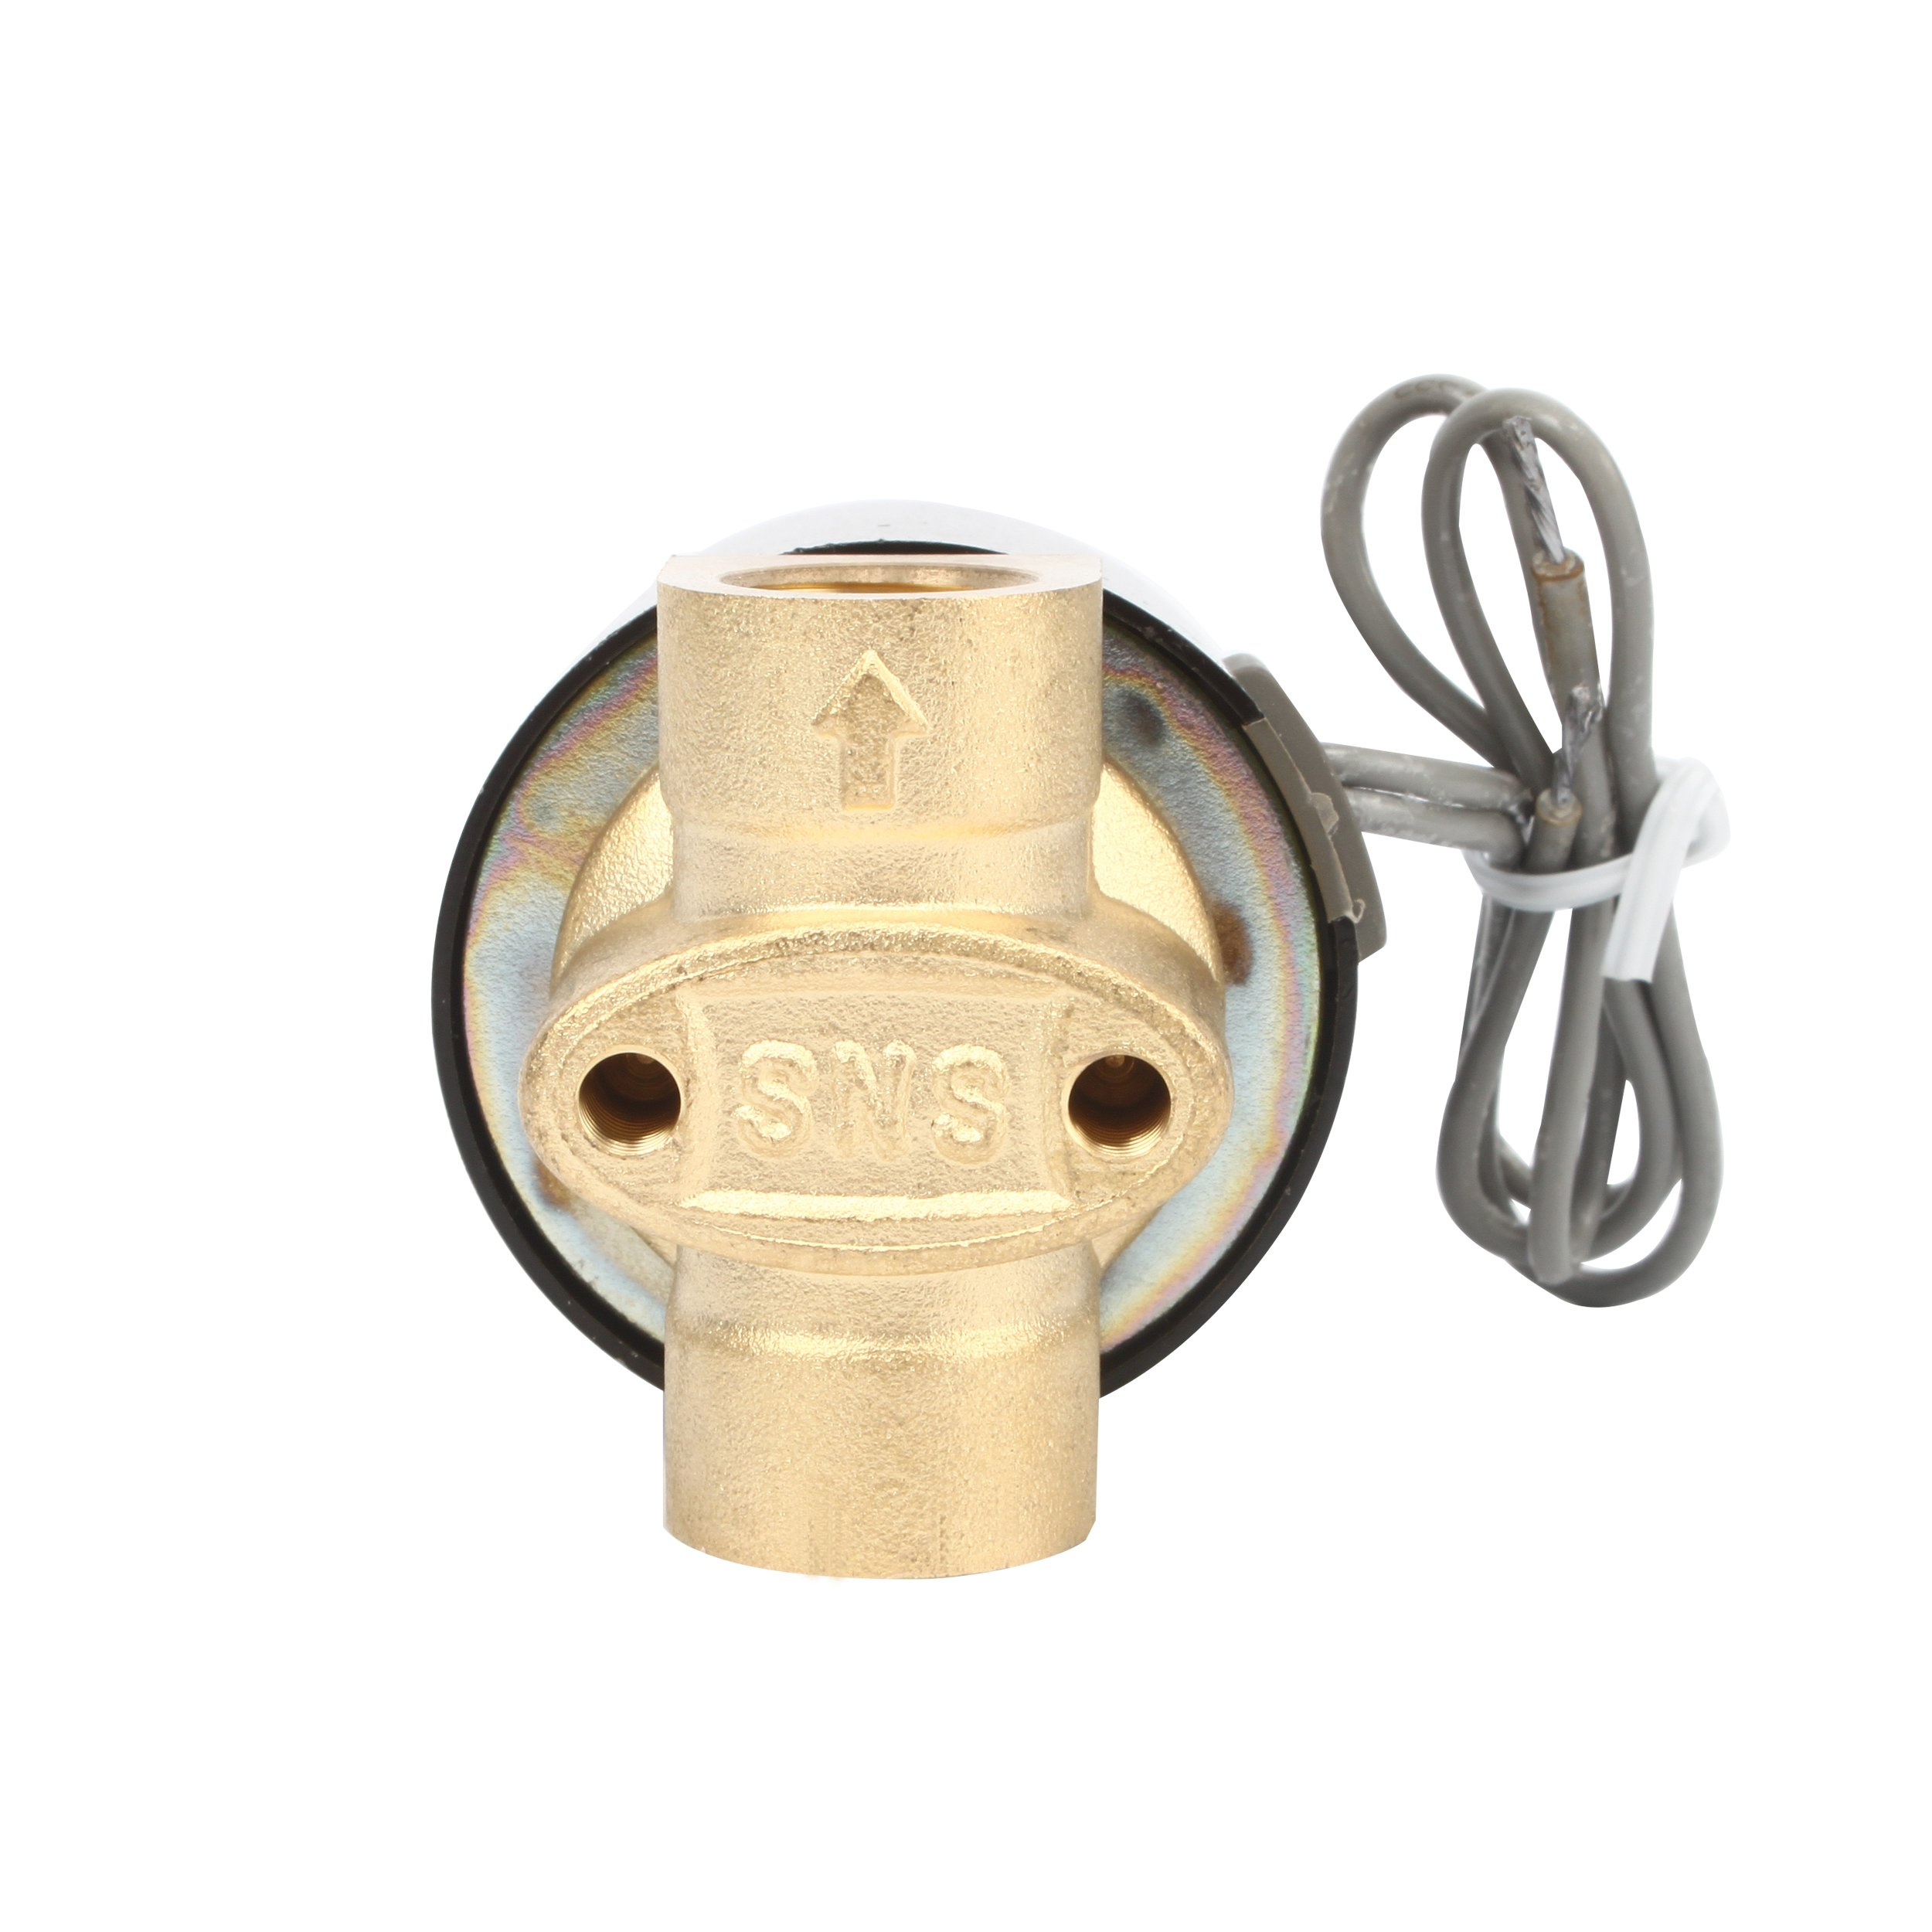 SNS 2W025-08 1/4'' DC12V NPT Brass Electric Solenoid Valve Normally Closed Water, Air, Diesel by SNS (Image #3)